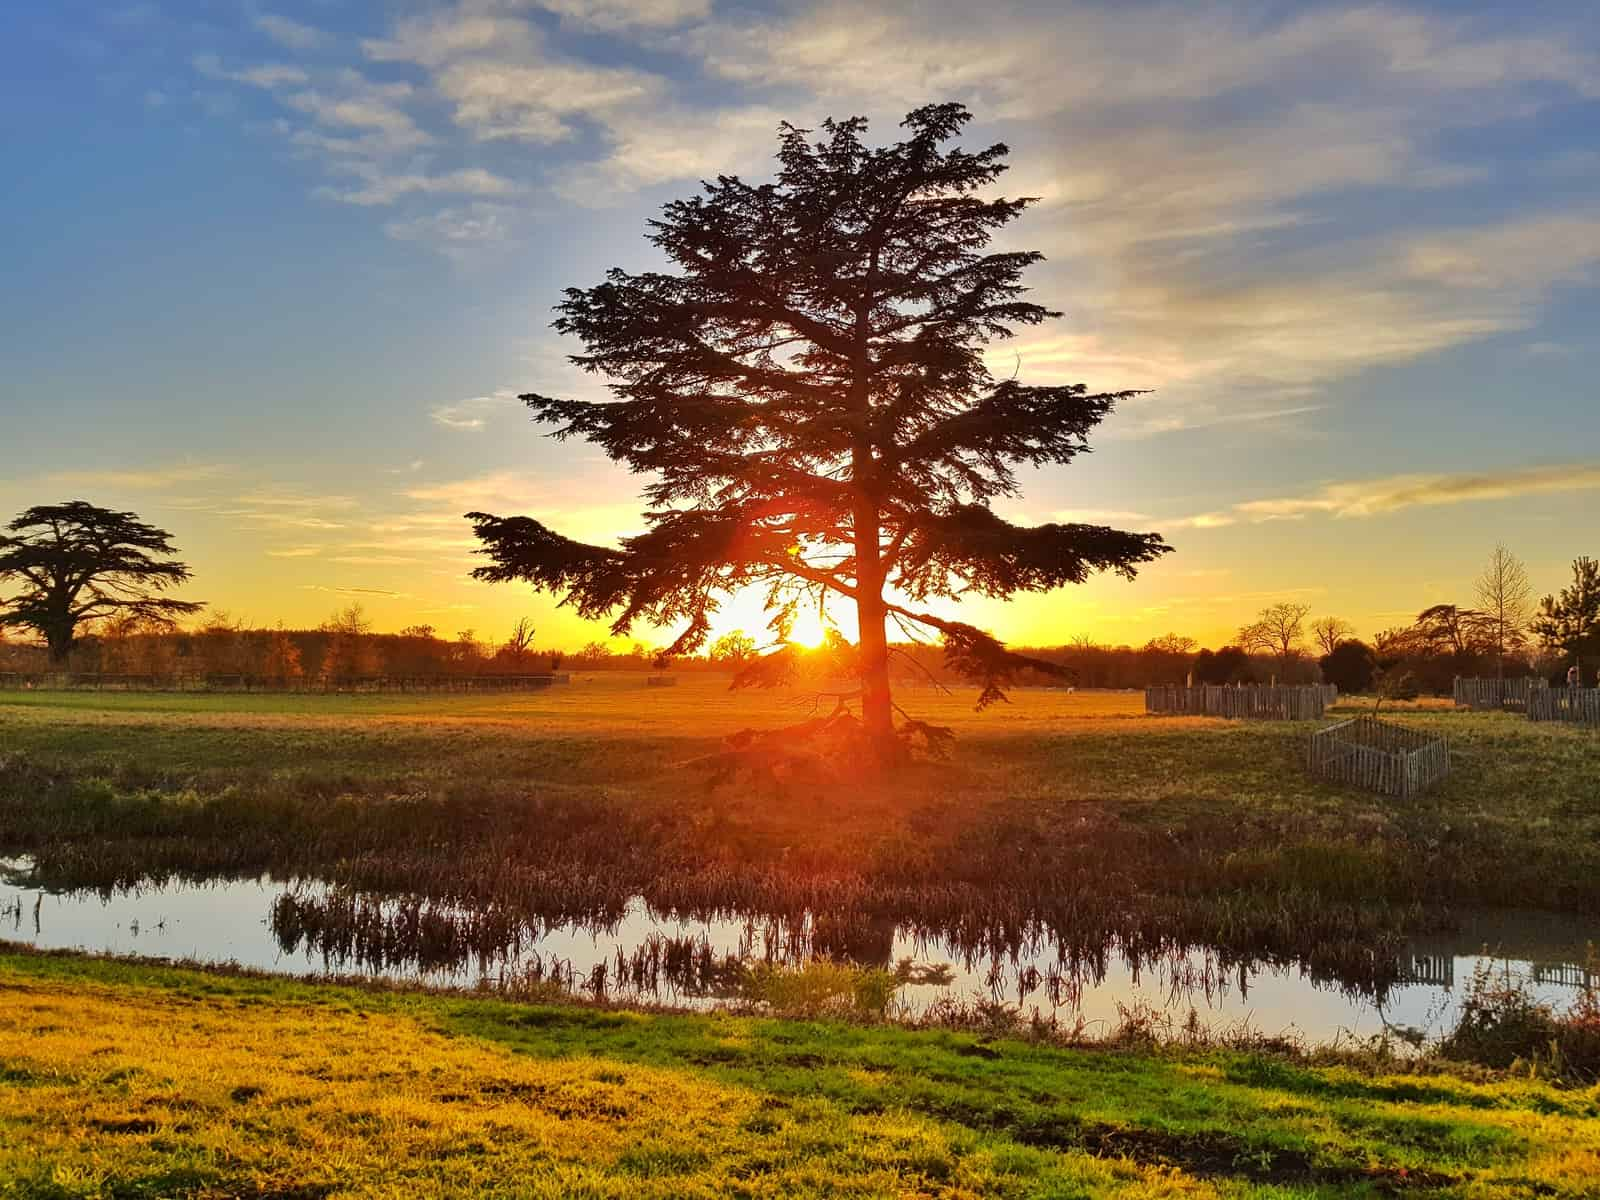 Tree on the Croome Estate with river in foreground reflecting the sunset and the tree